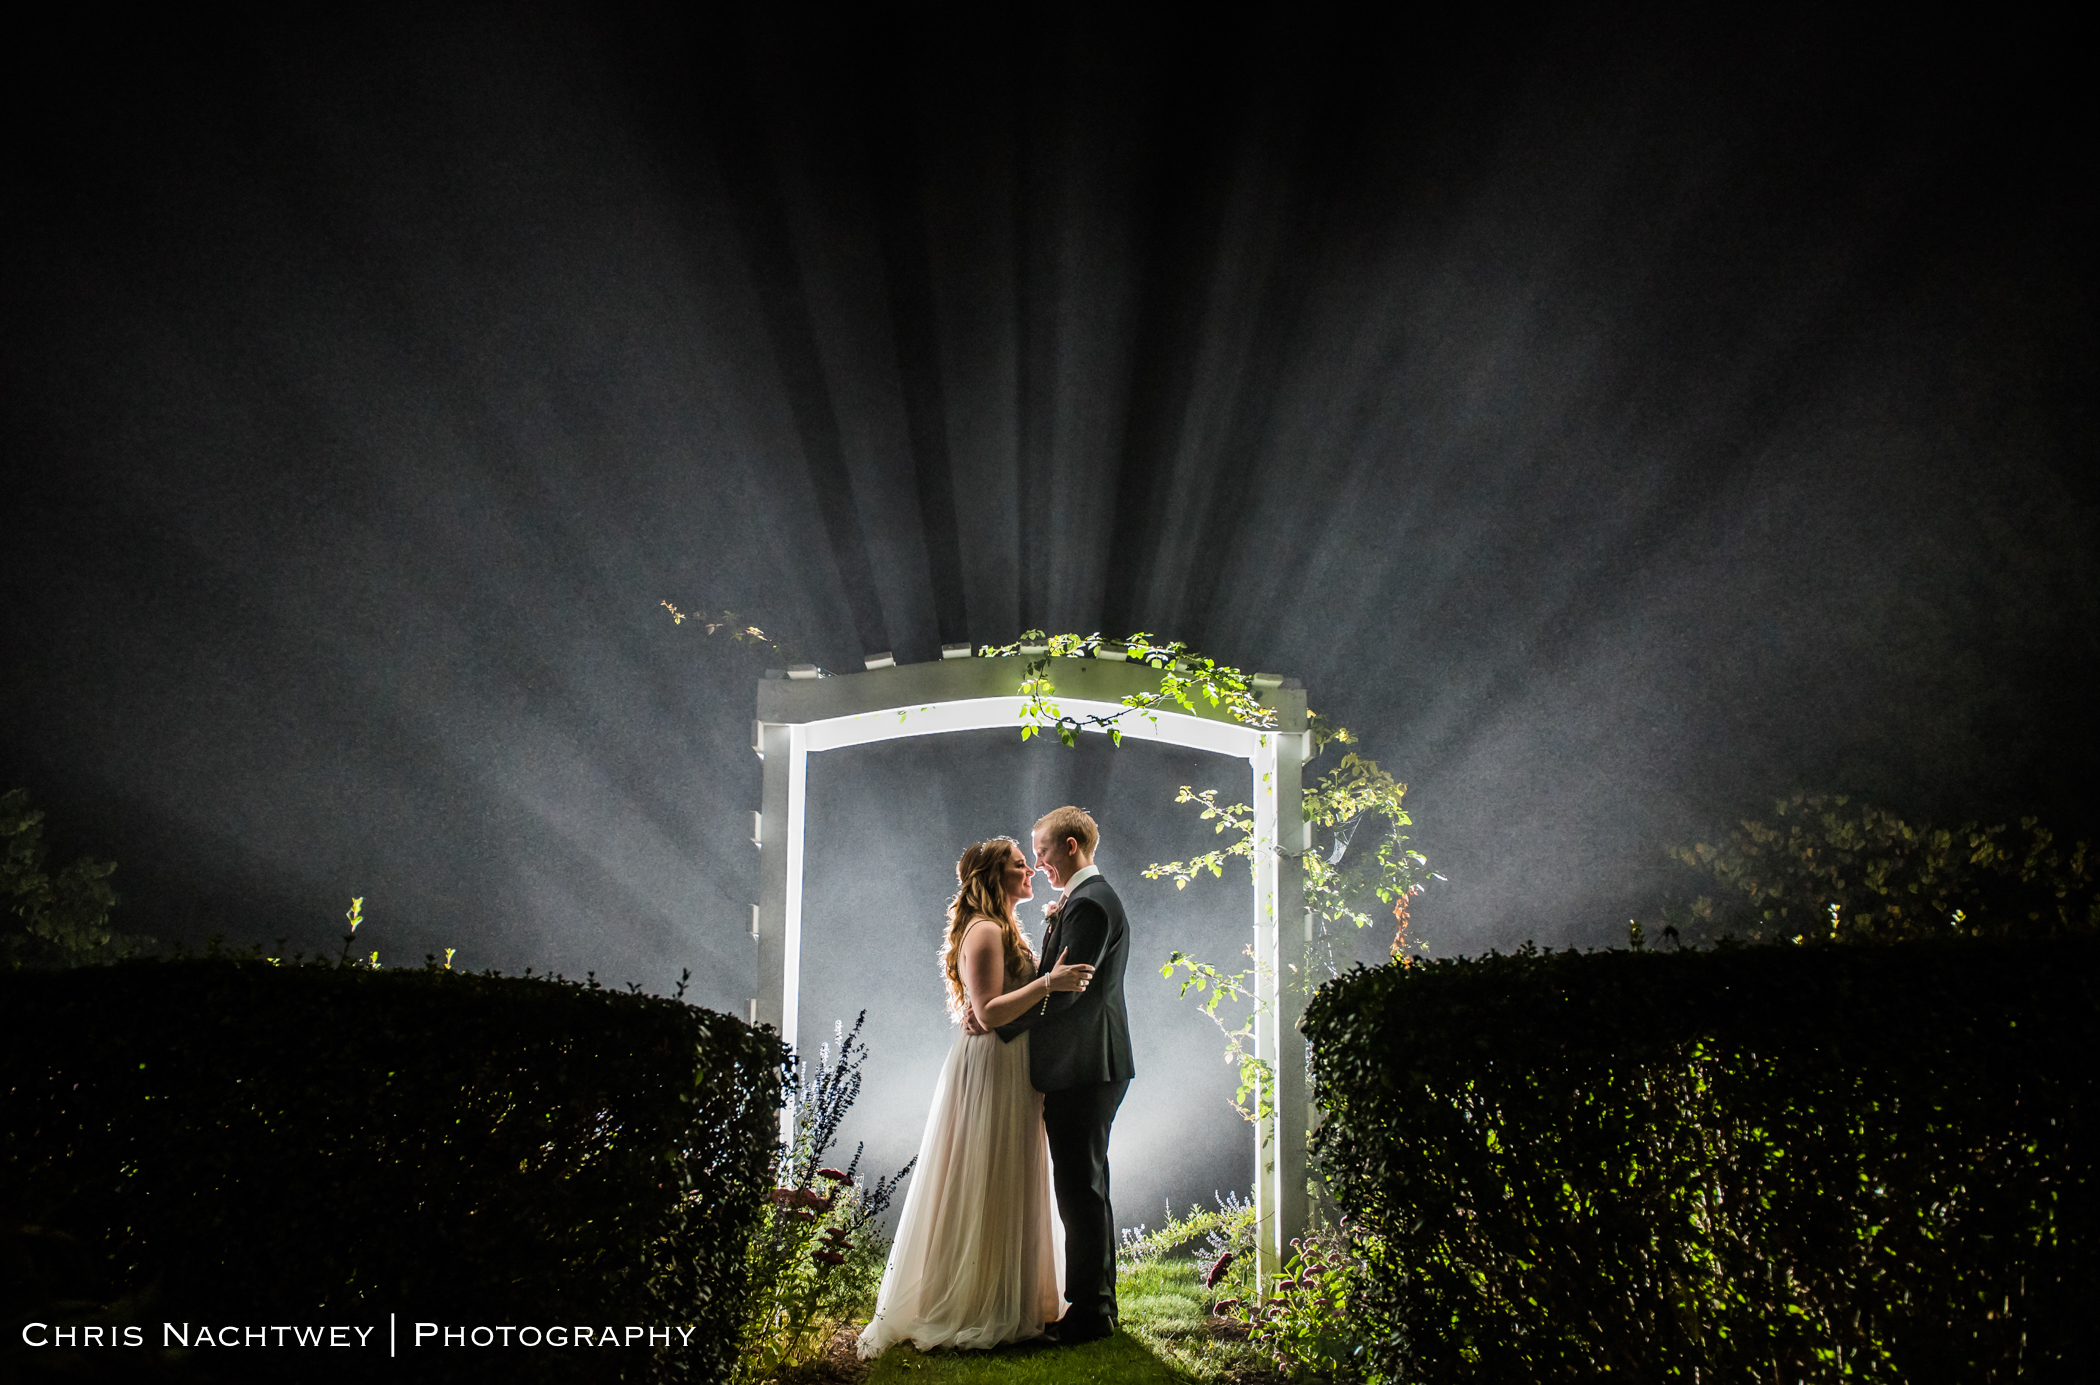 inn-at-mystic-wedding-photos-chris-nachtwey-photography-2018-31.jpg